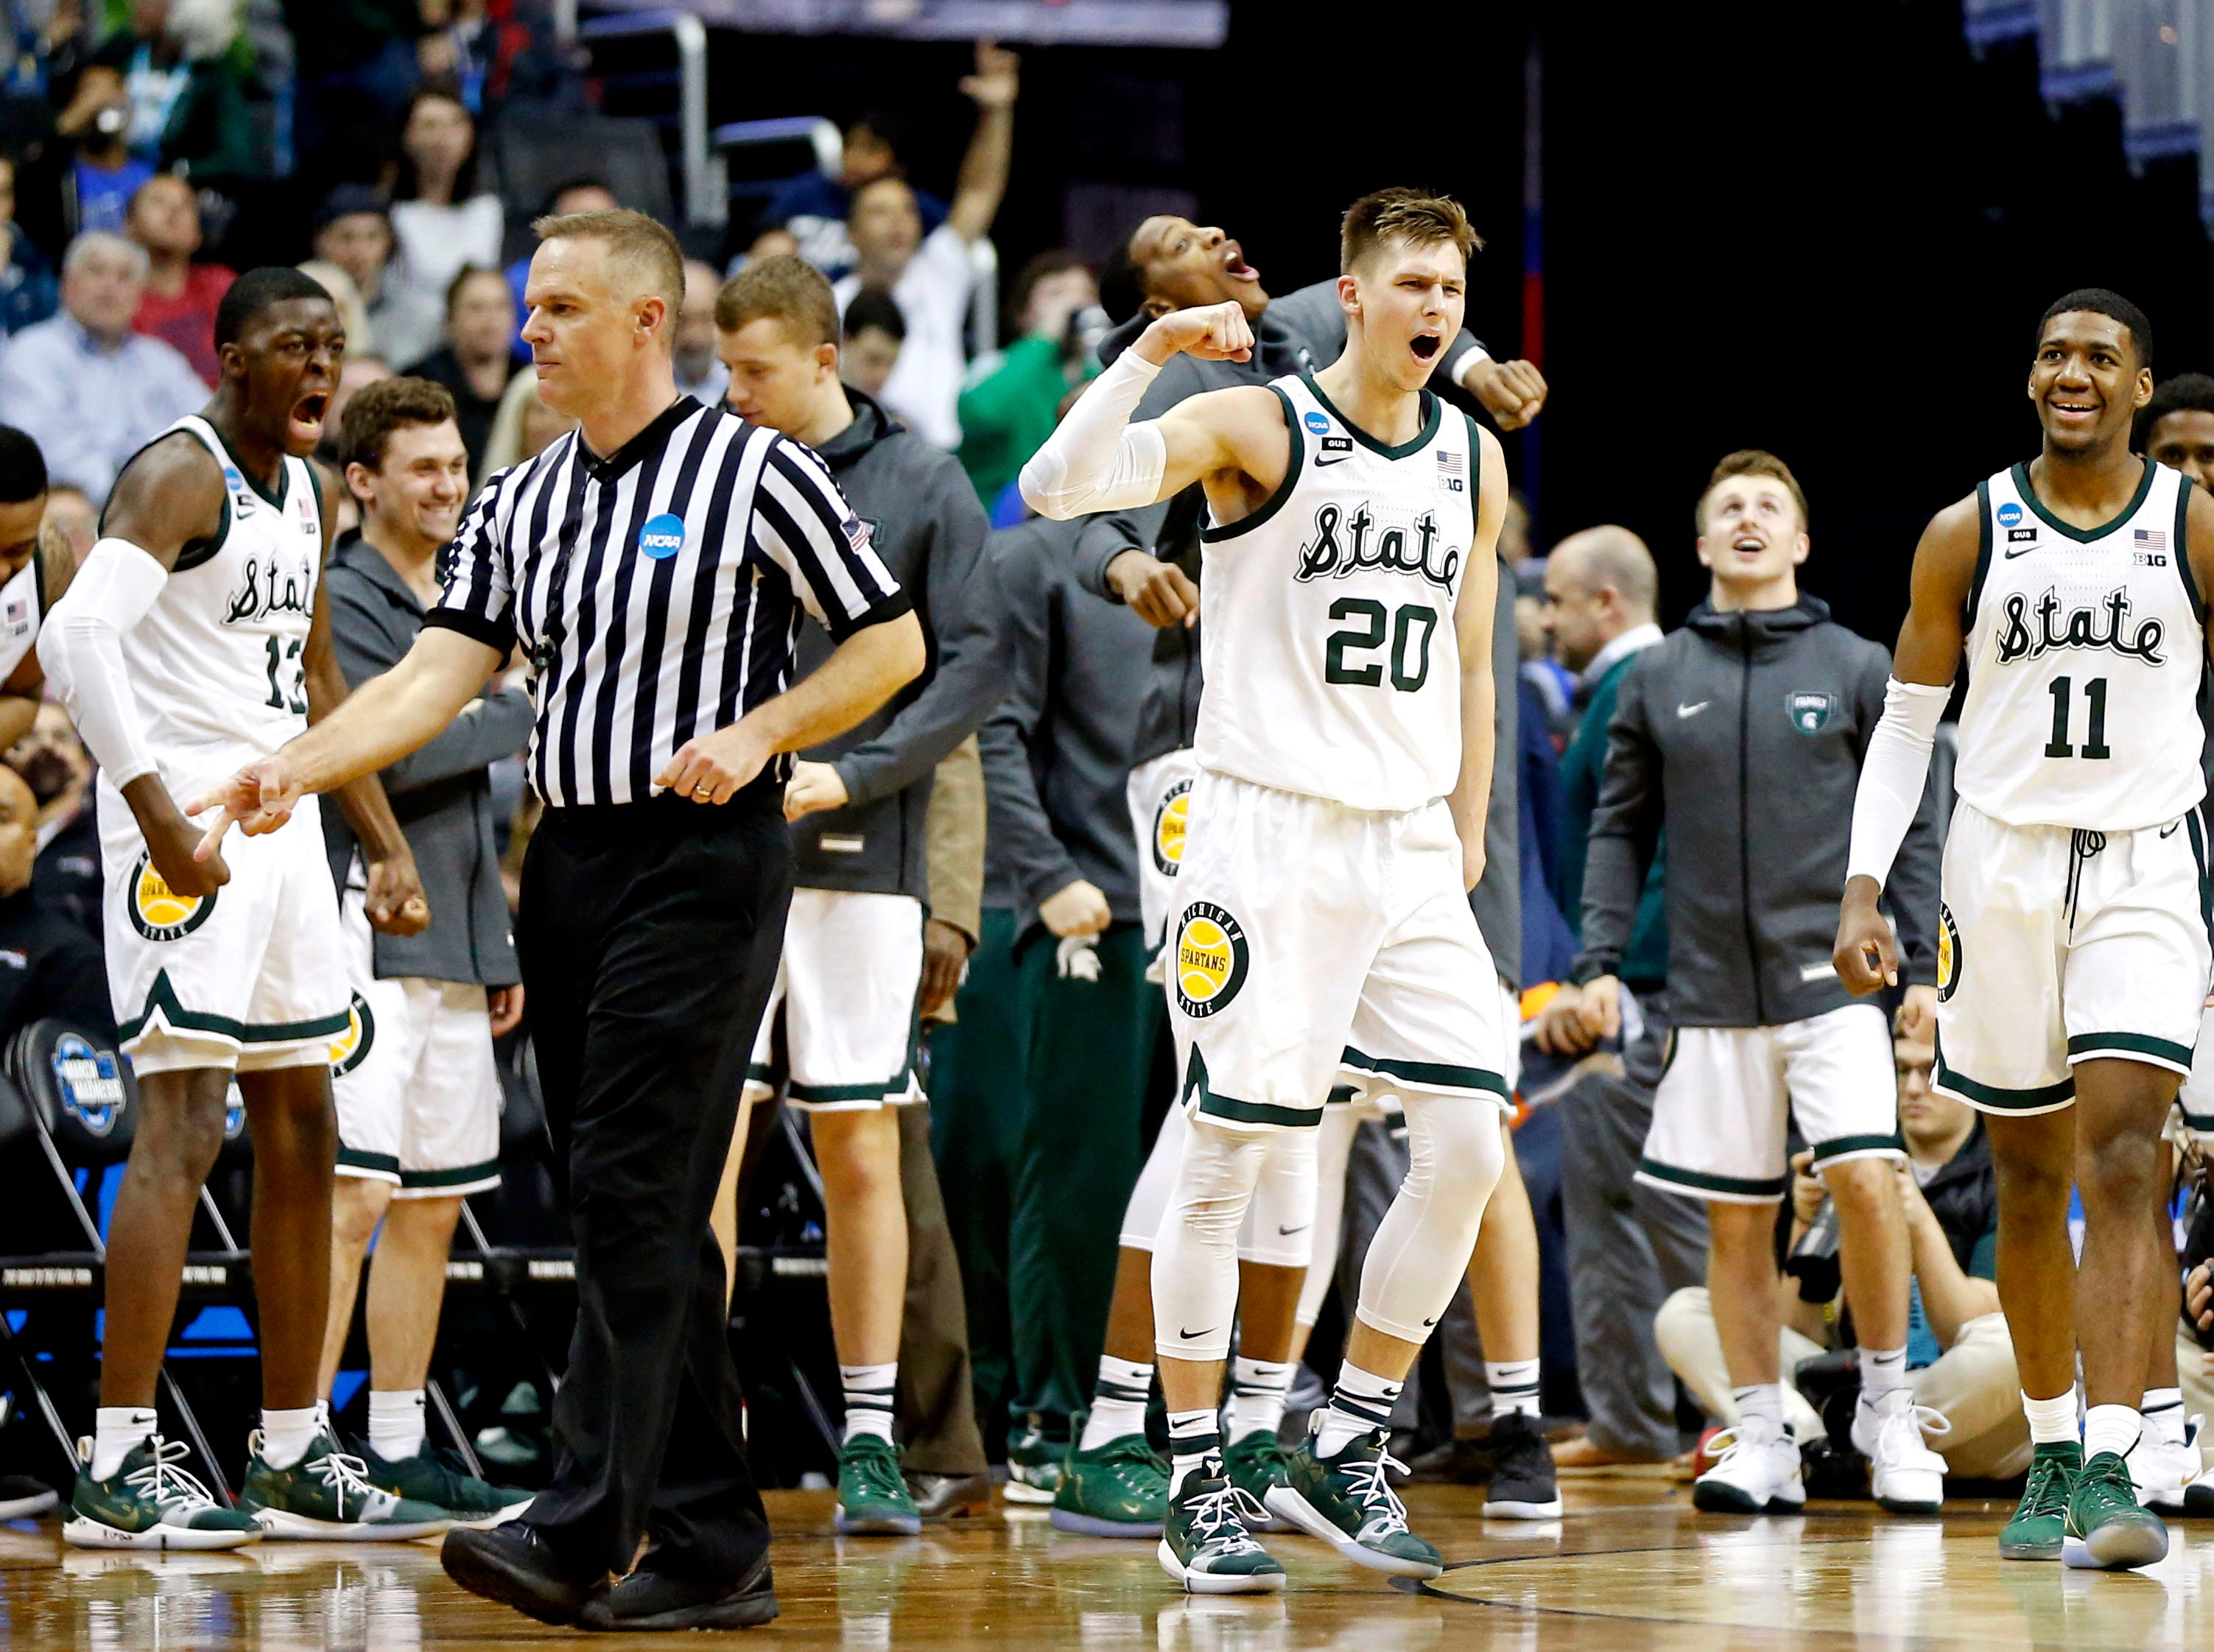 Mar 29, 2019; Washington, DC, USA; Michigan State Spartans guard Matt McQuaid (20) reacts after a play during the second half against the LSU Tigers in the semifinals of the east regional of the 2019 NCAA Tournament at Capital One Arena. Mandatory Credit: Amber Searls-USA TODAY Sports